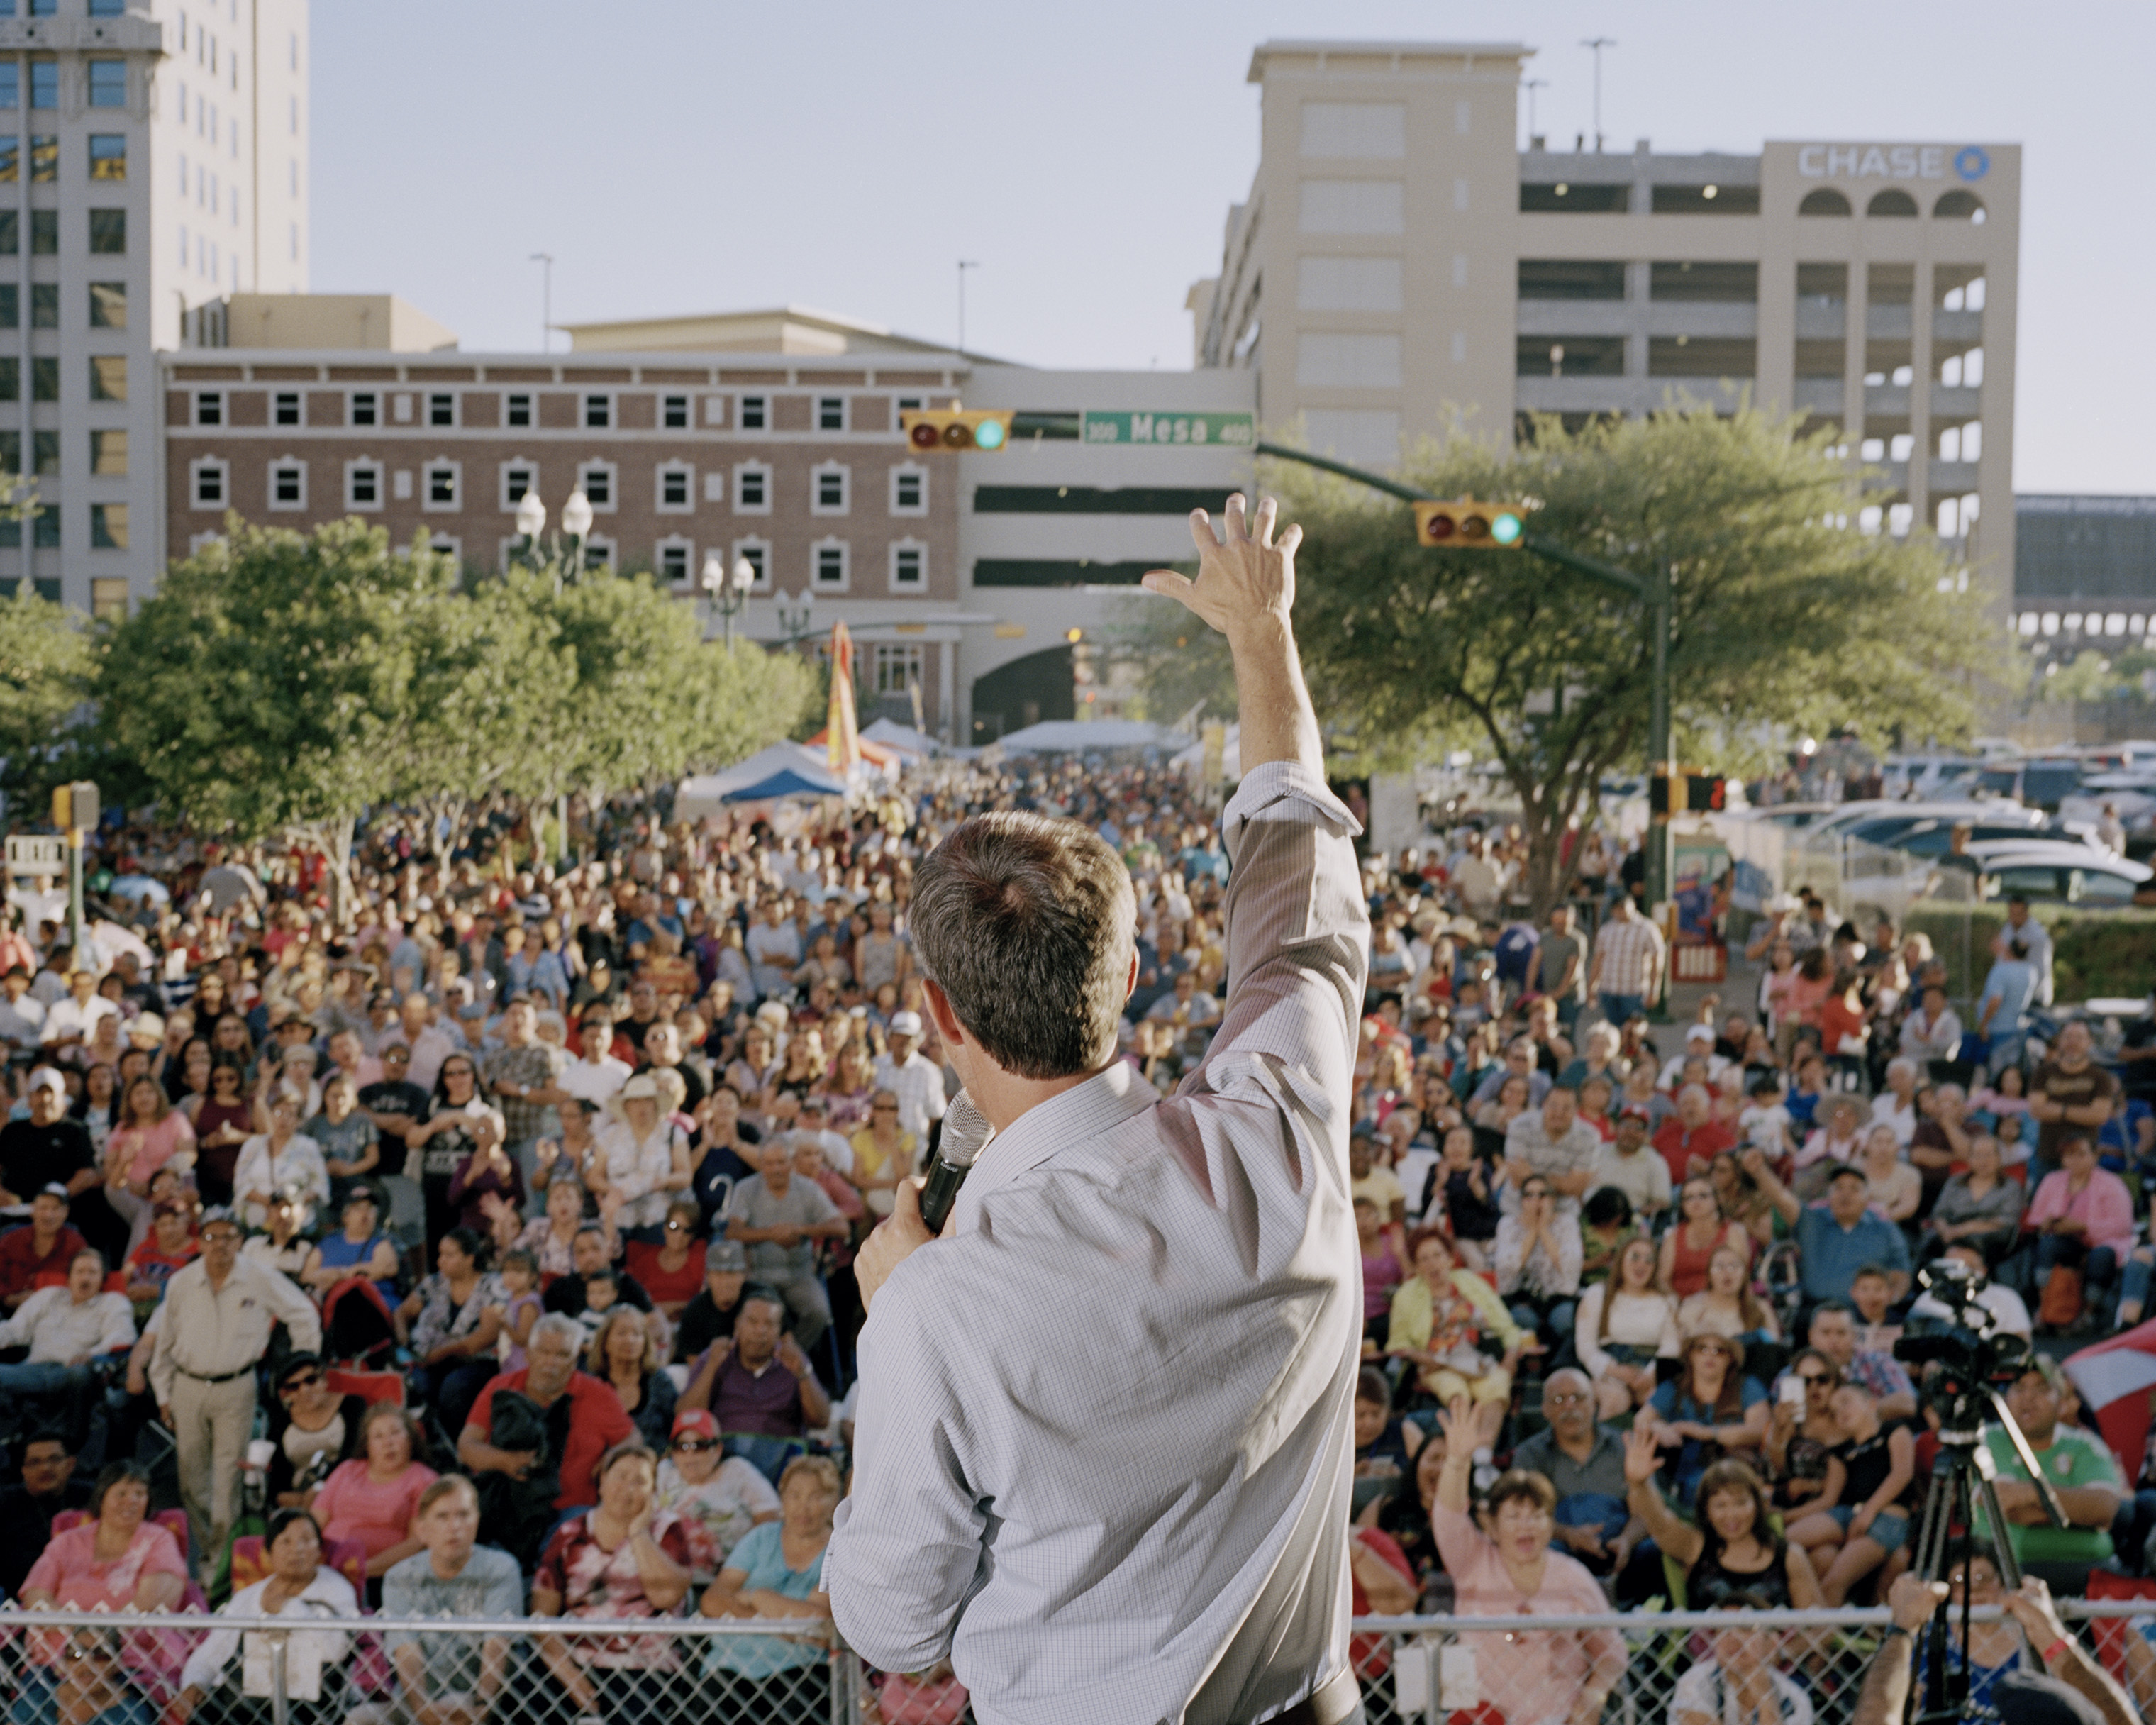 O'Rourke speaks to the crowd at the Mariachi Loco Music Festival in El Paso.